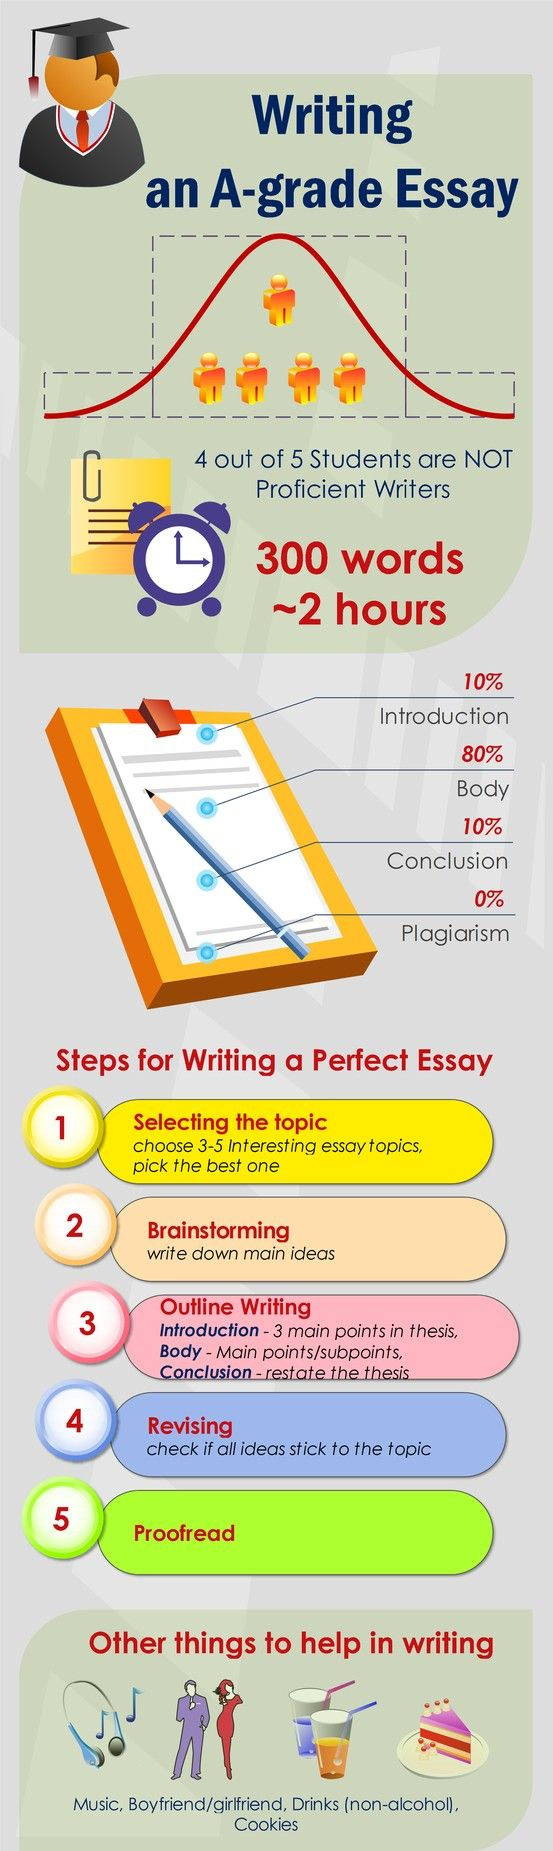 essay on study skills If, despite study and good intentions, you cannot seem to get your essay written, or even started, you should let your tutor know as soon as possible your tutor will have encountered such problems many times, and it is part of his/her job to help you sort them out.